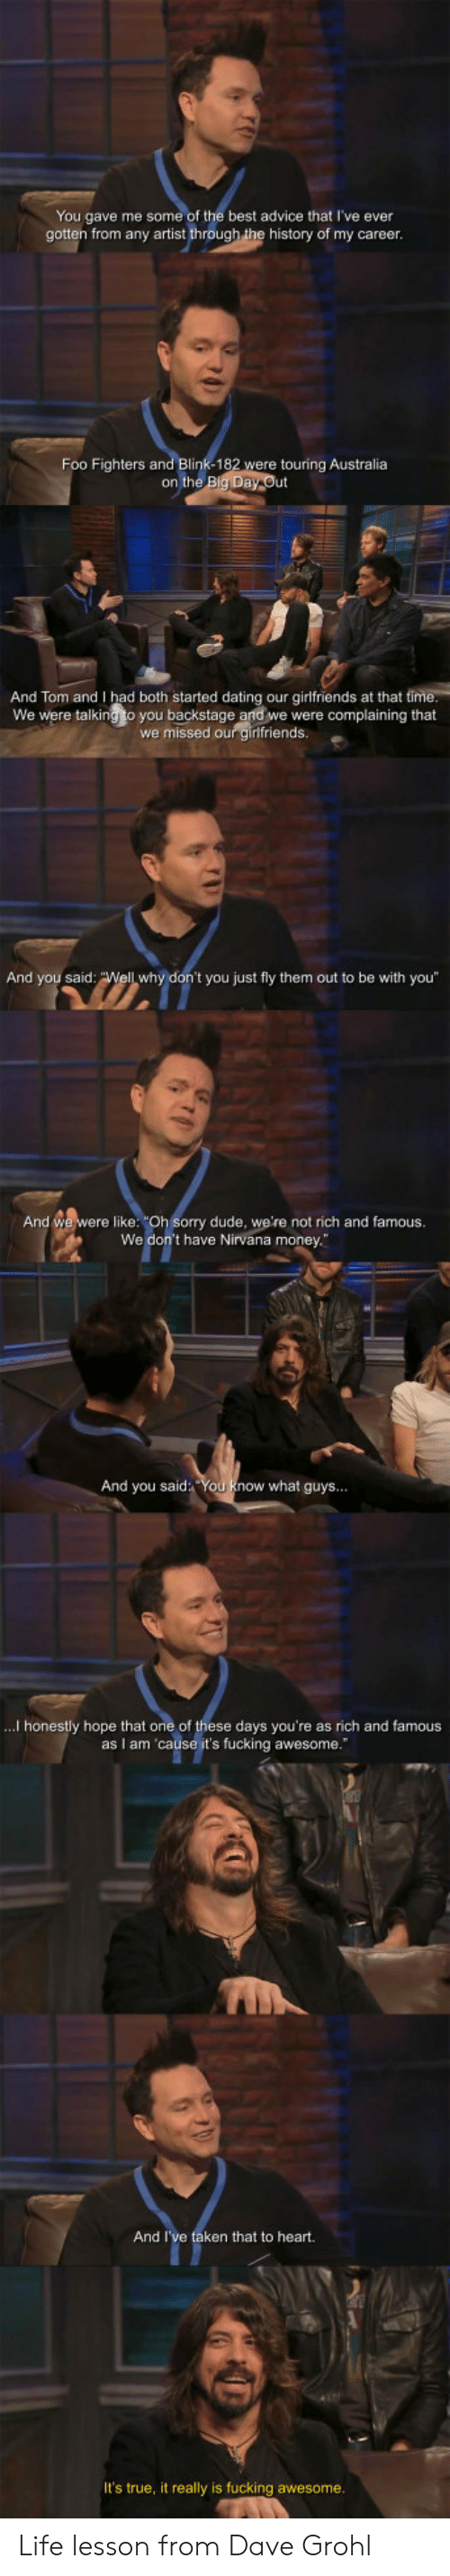 """Advice, Dating, and Dave Grohl: You gave me some of the best advice that I've ever  gotten from any artist through the history of my career  Foo Fighters and Blink-182  were touring Australia  on the  And Tom and I had both started dating our girlfriends at that ti  We were talking to you backstage and we were complaining that  we missed our girlfriends  And you said  t you just fly them out to be with you""""  And we were like: """"Oh Sorry dude, we're not rich and famous.  We don't have Nirvana money  And you said You know what guys...  ...I honestly hope that one of these days you're as rich and famous  as I am 'cause it's fucking awesome.""""  And I  ken that to heart.  It's true, it really is fucking awesome Life lesson from Dave Grohl"""